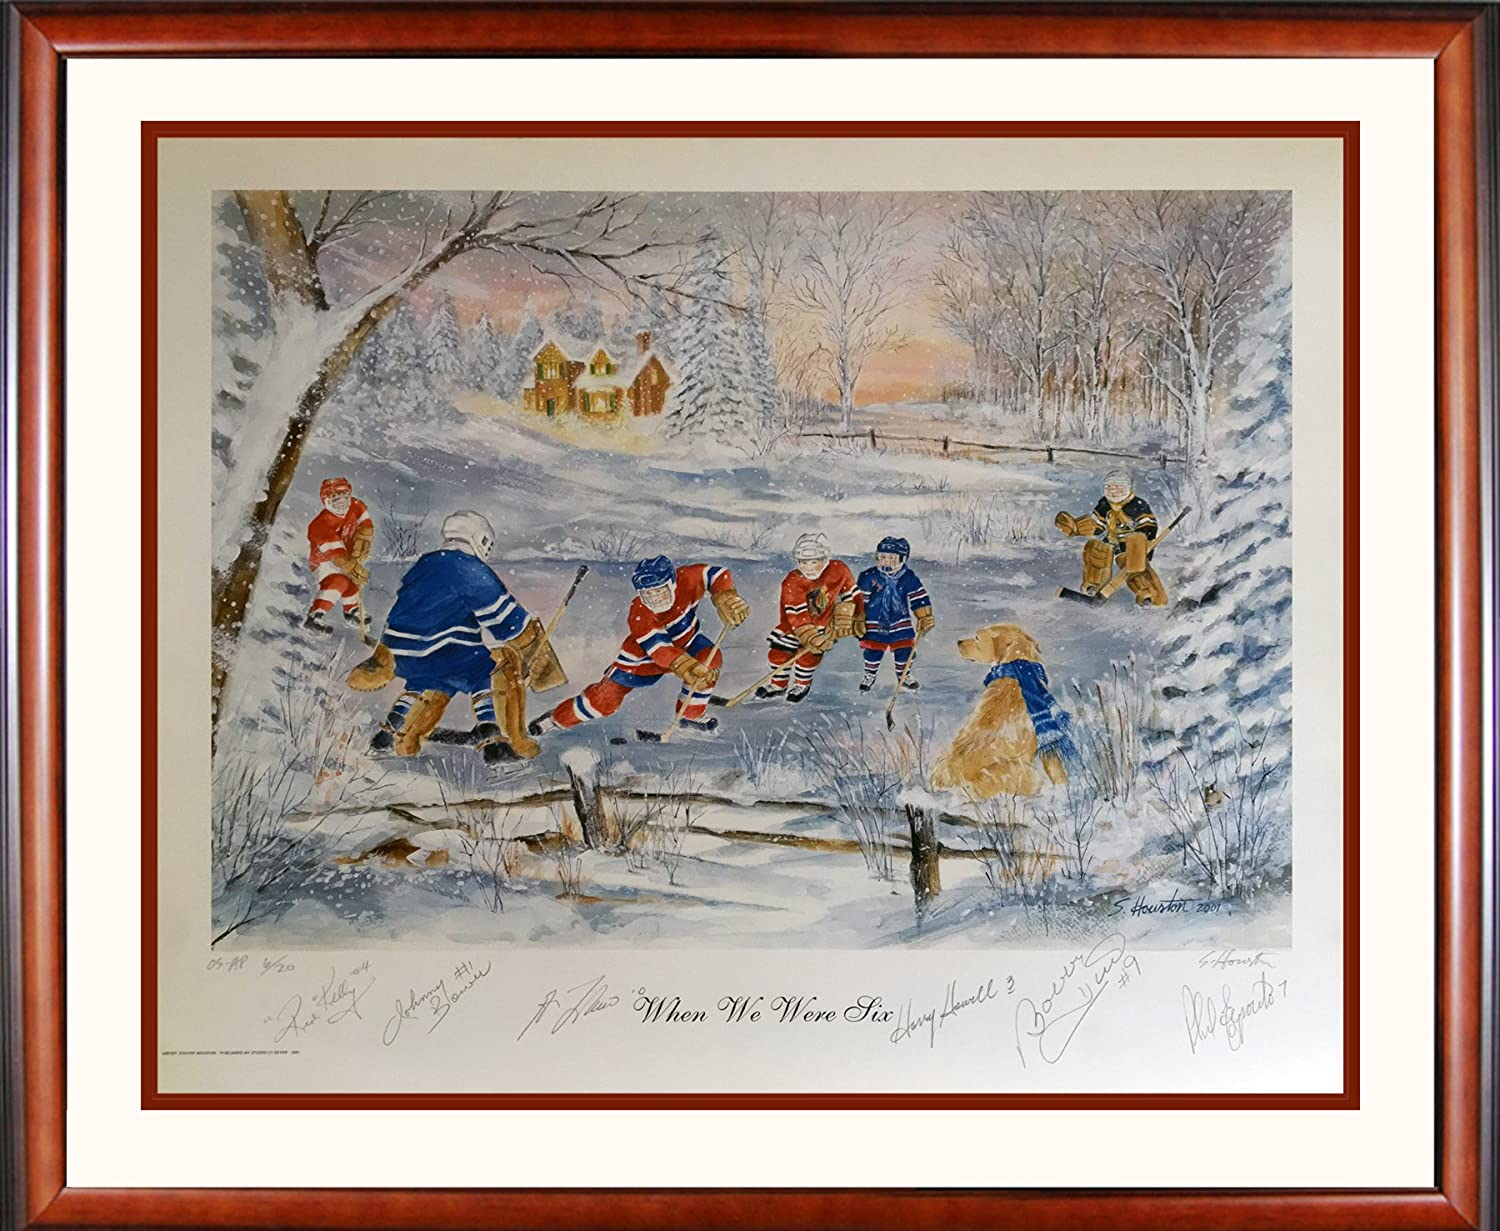 Ltd  20 Signed Kelly, Howell, Bower, Hull, Lafleur, Esposito  When We Were Six